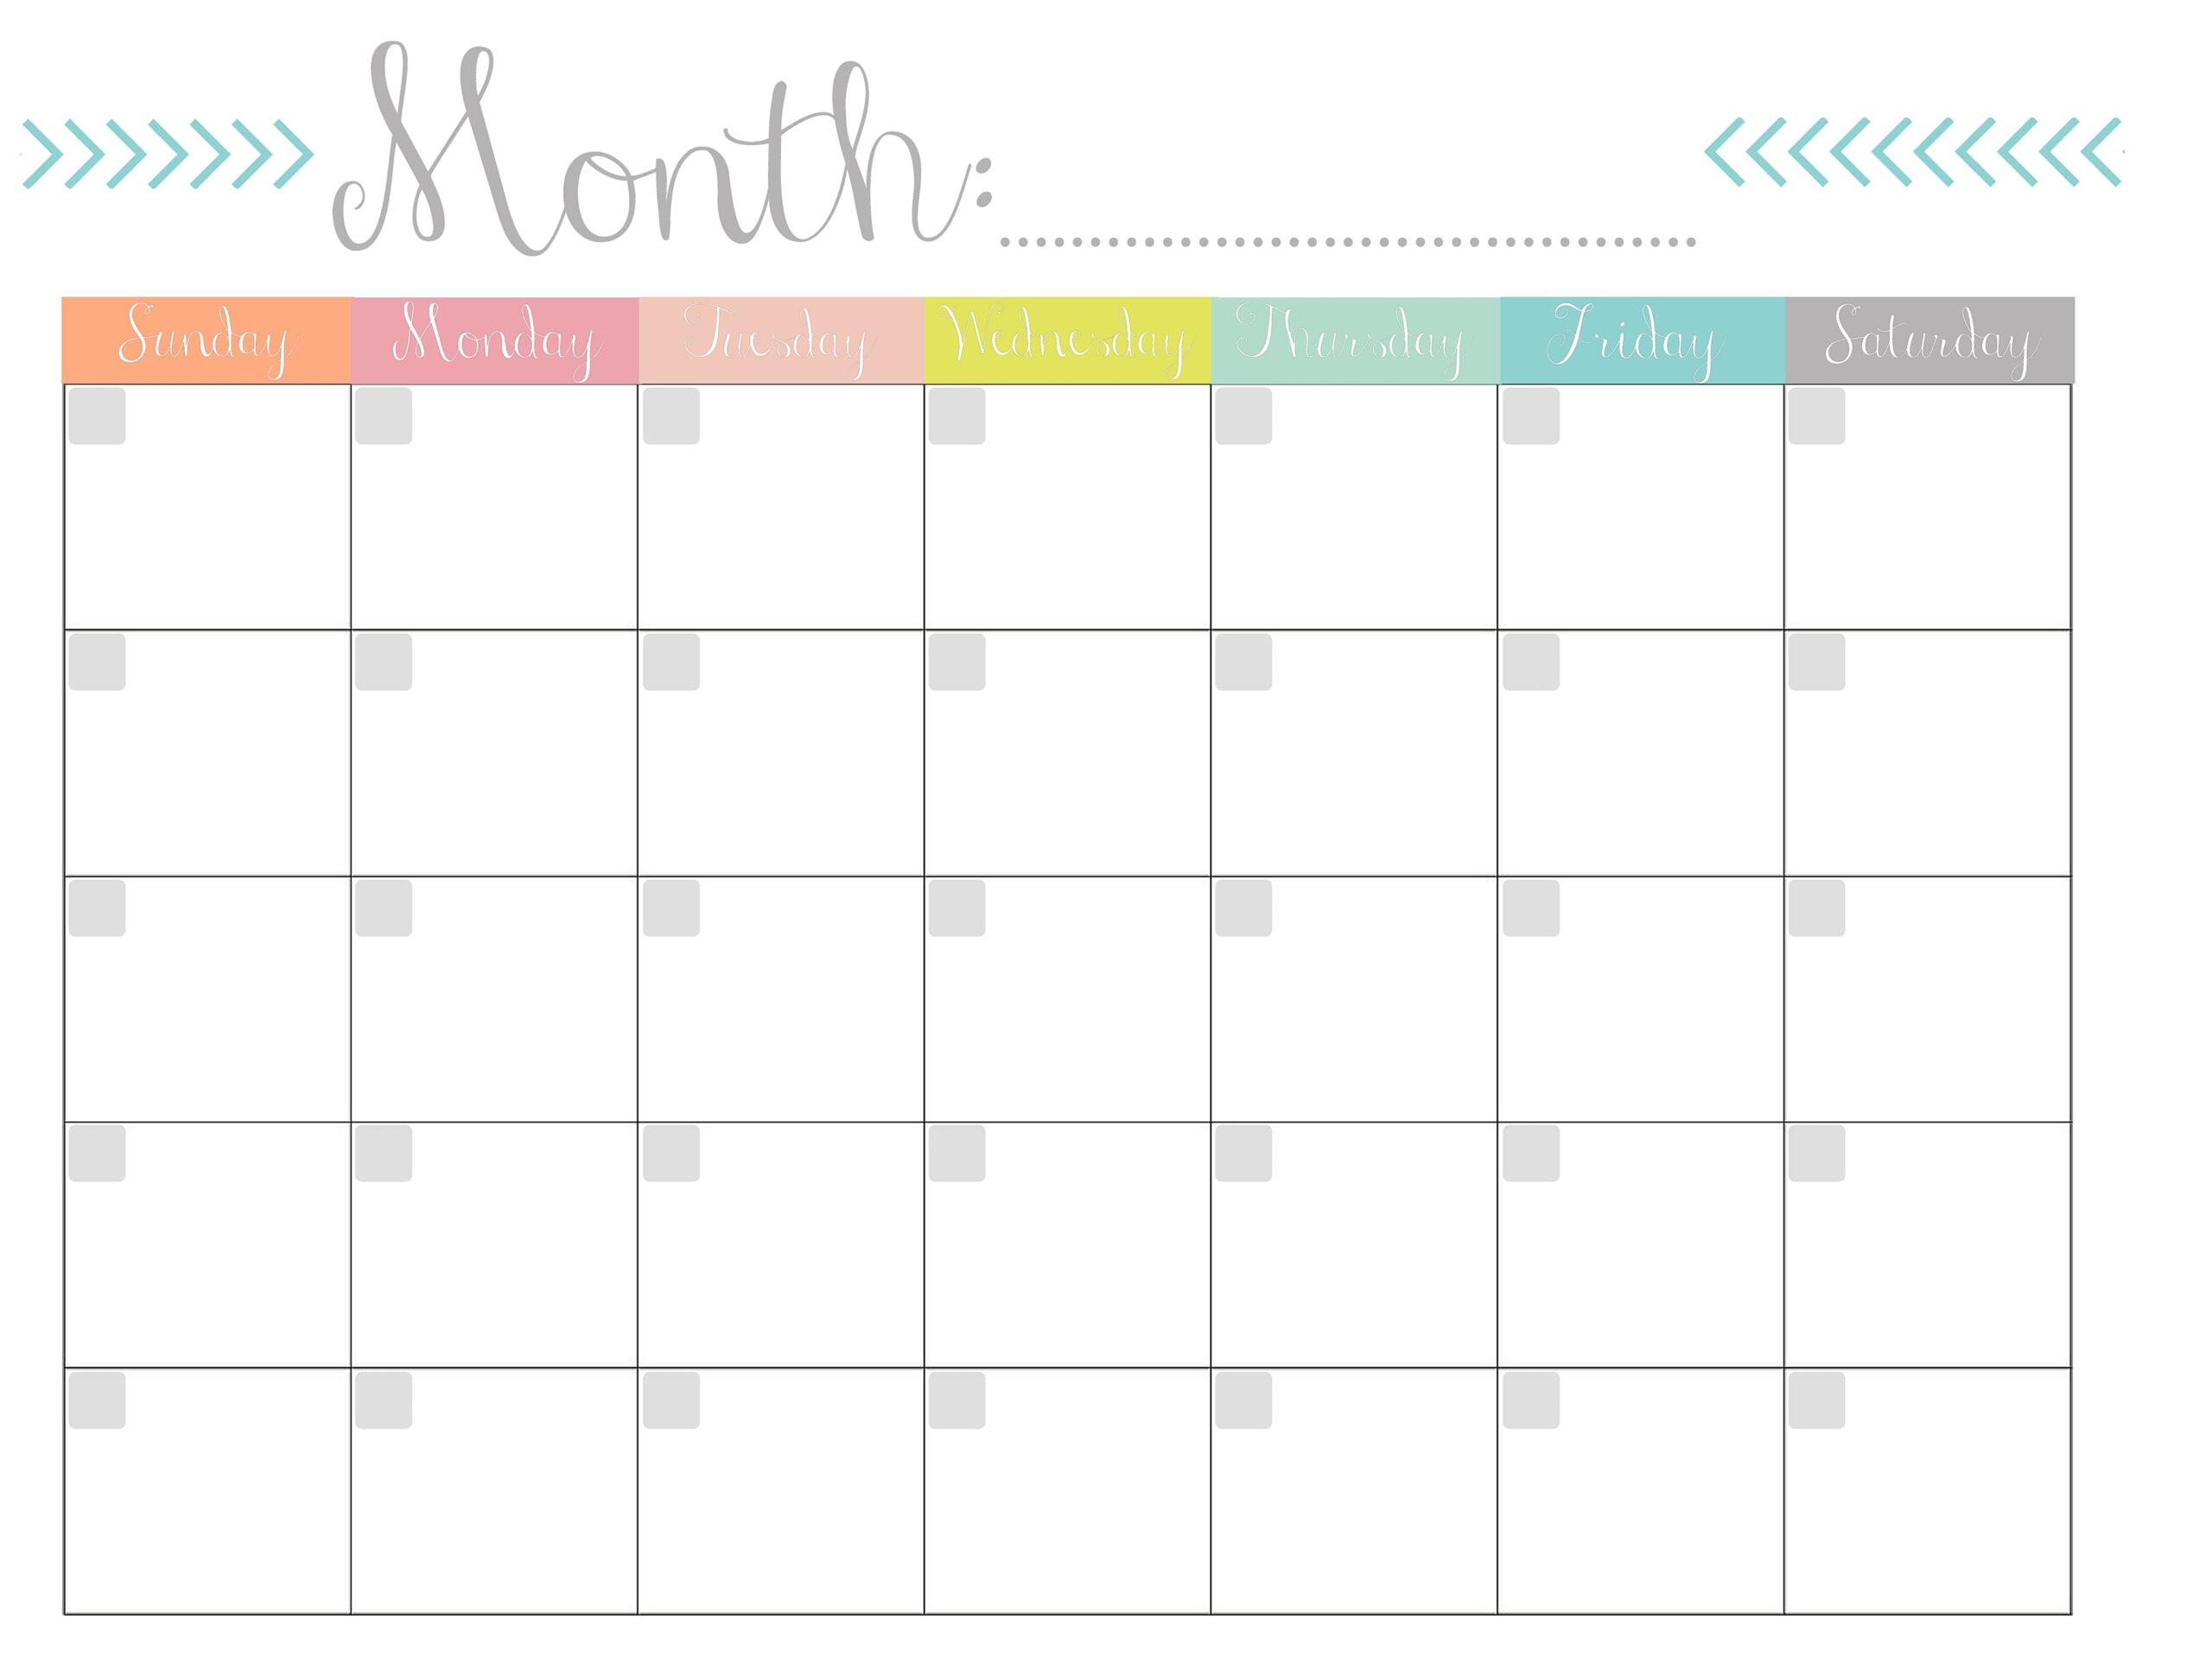 Blank Monthly Calendar Template To Fill In | Calendar with Free Fill In Calendar Template